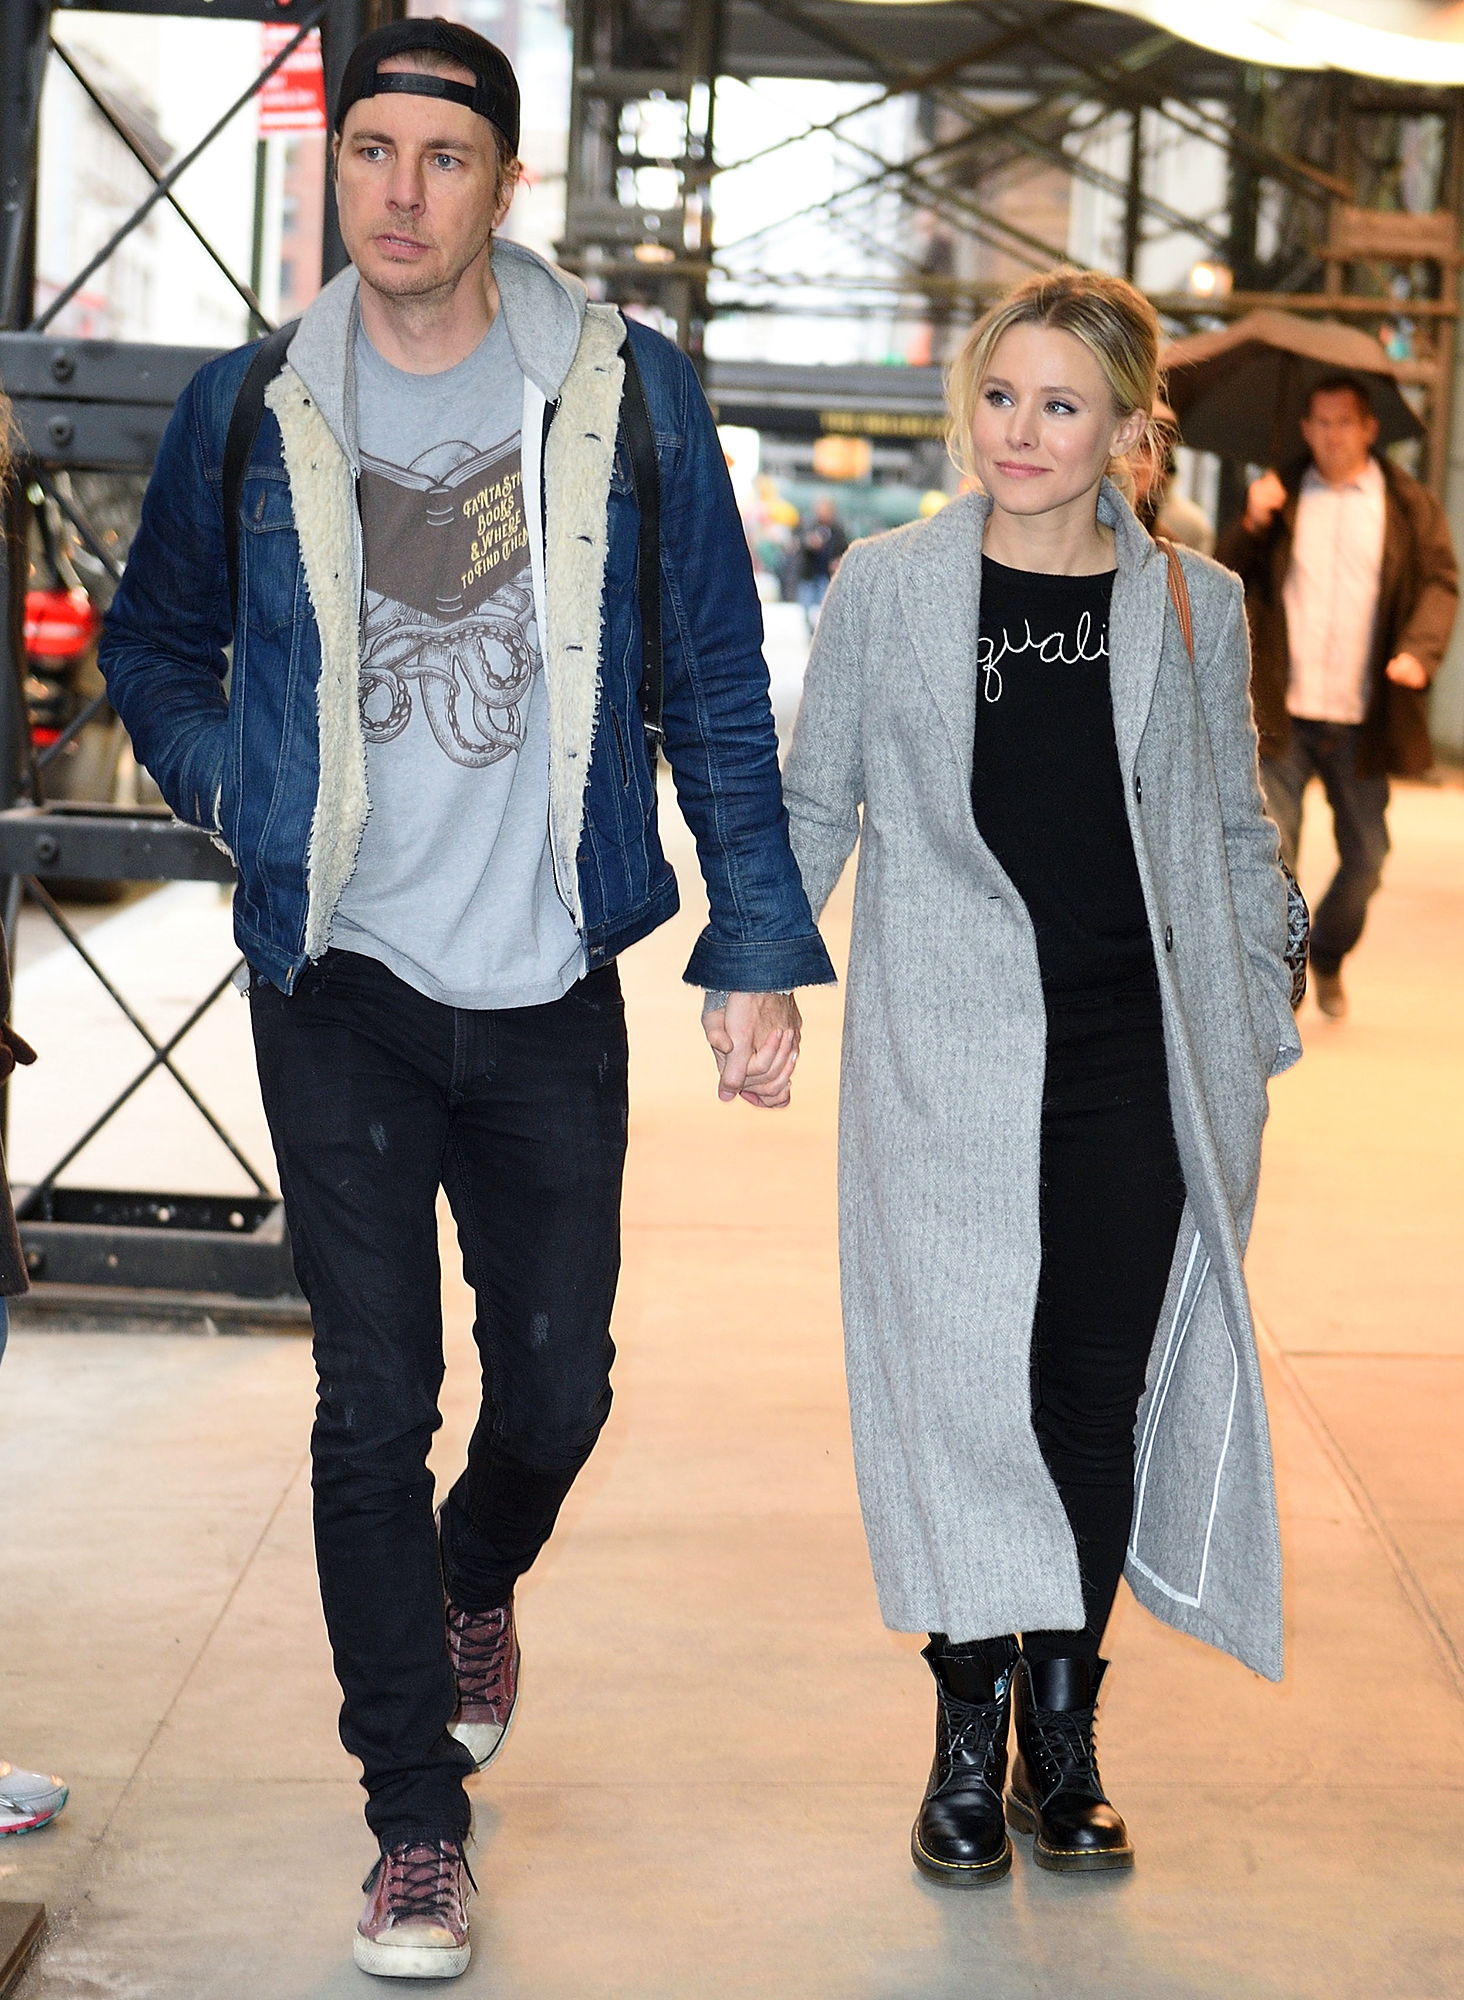 Dax Shepard and Kristen Bell check out of their hotel in NYC.